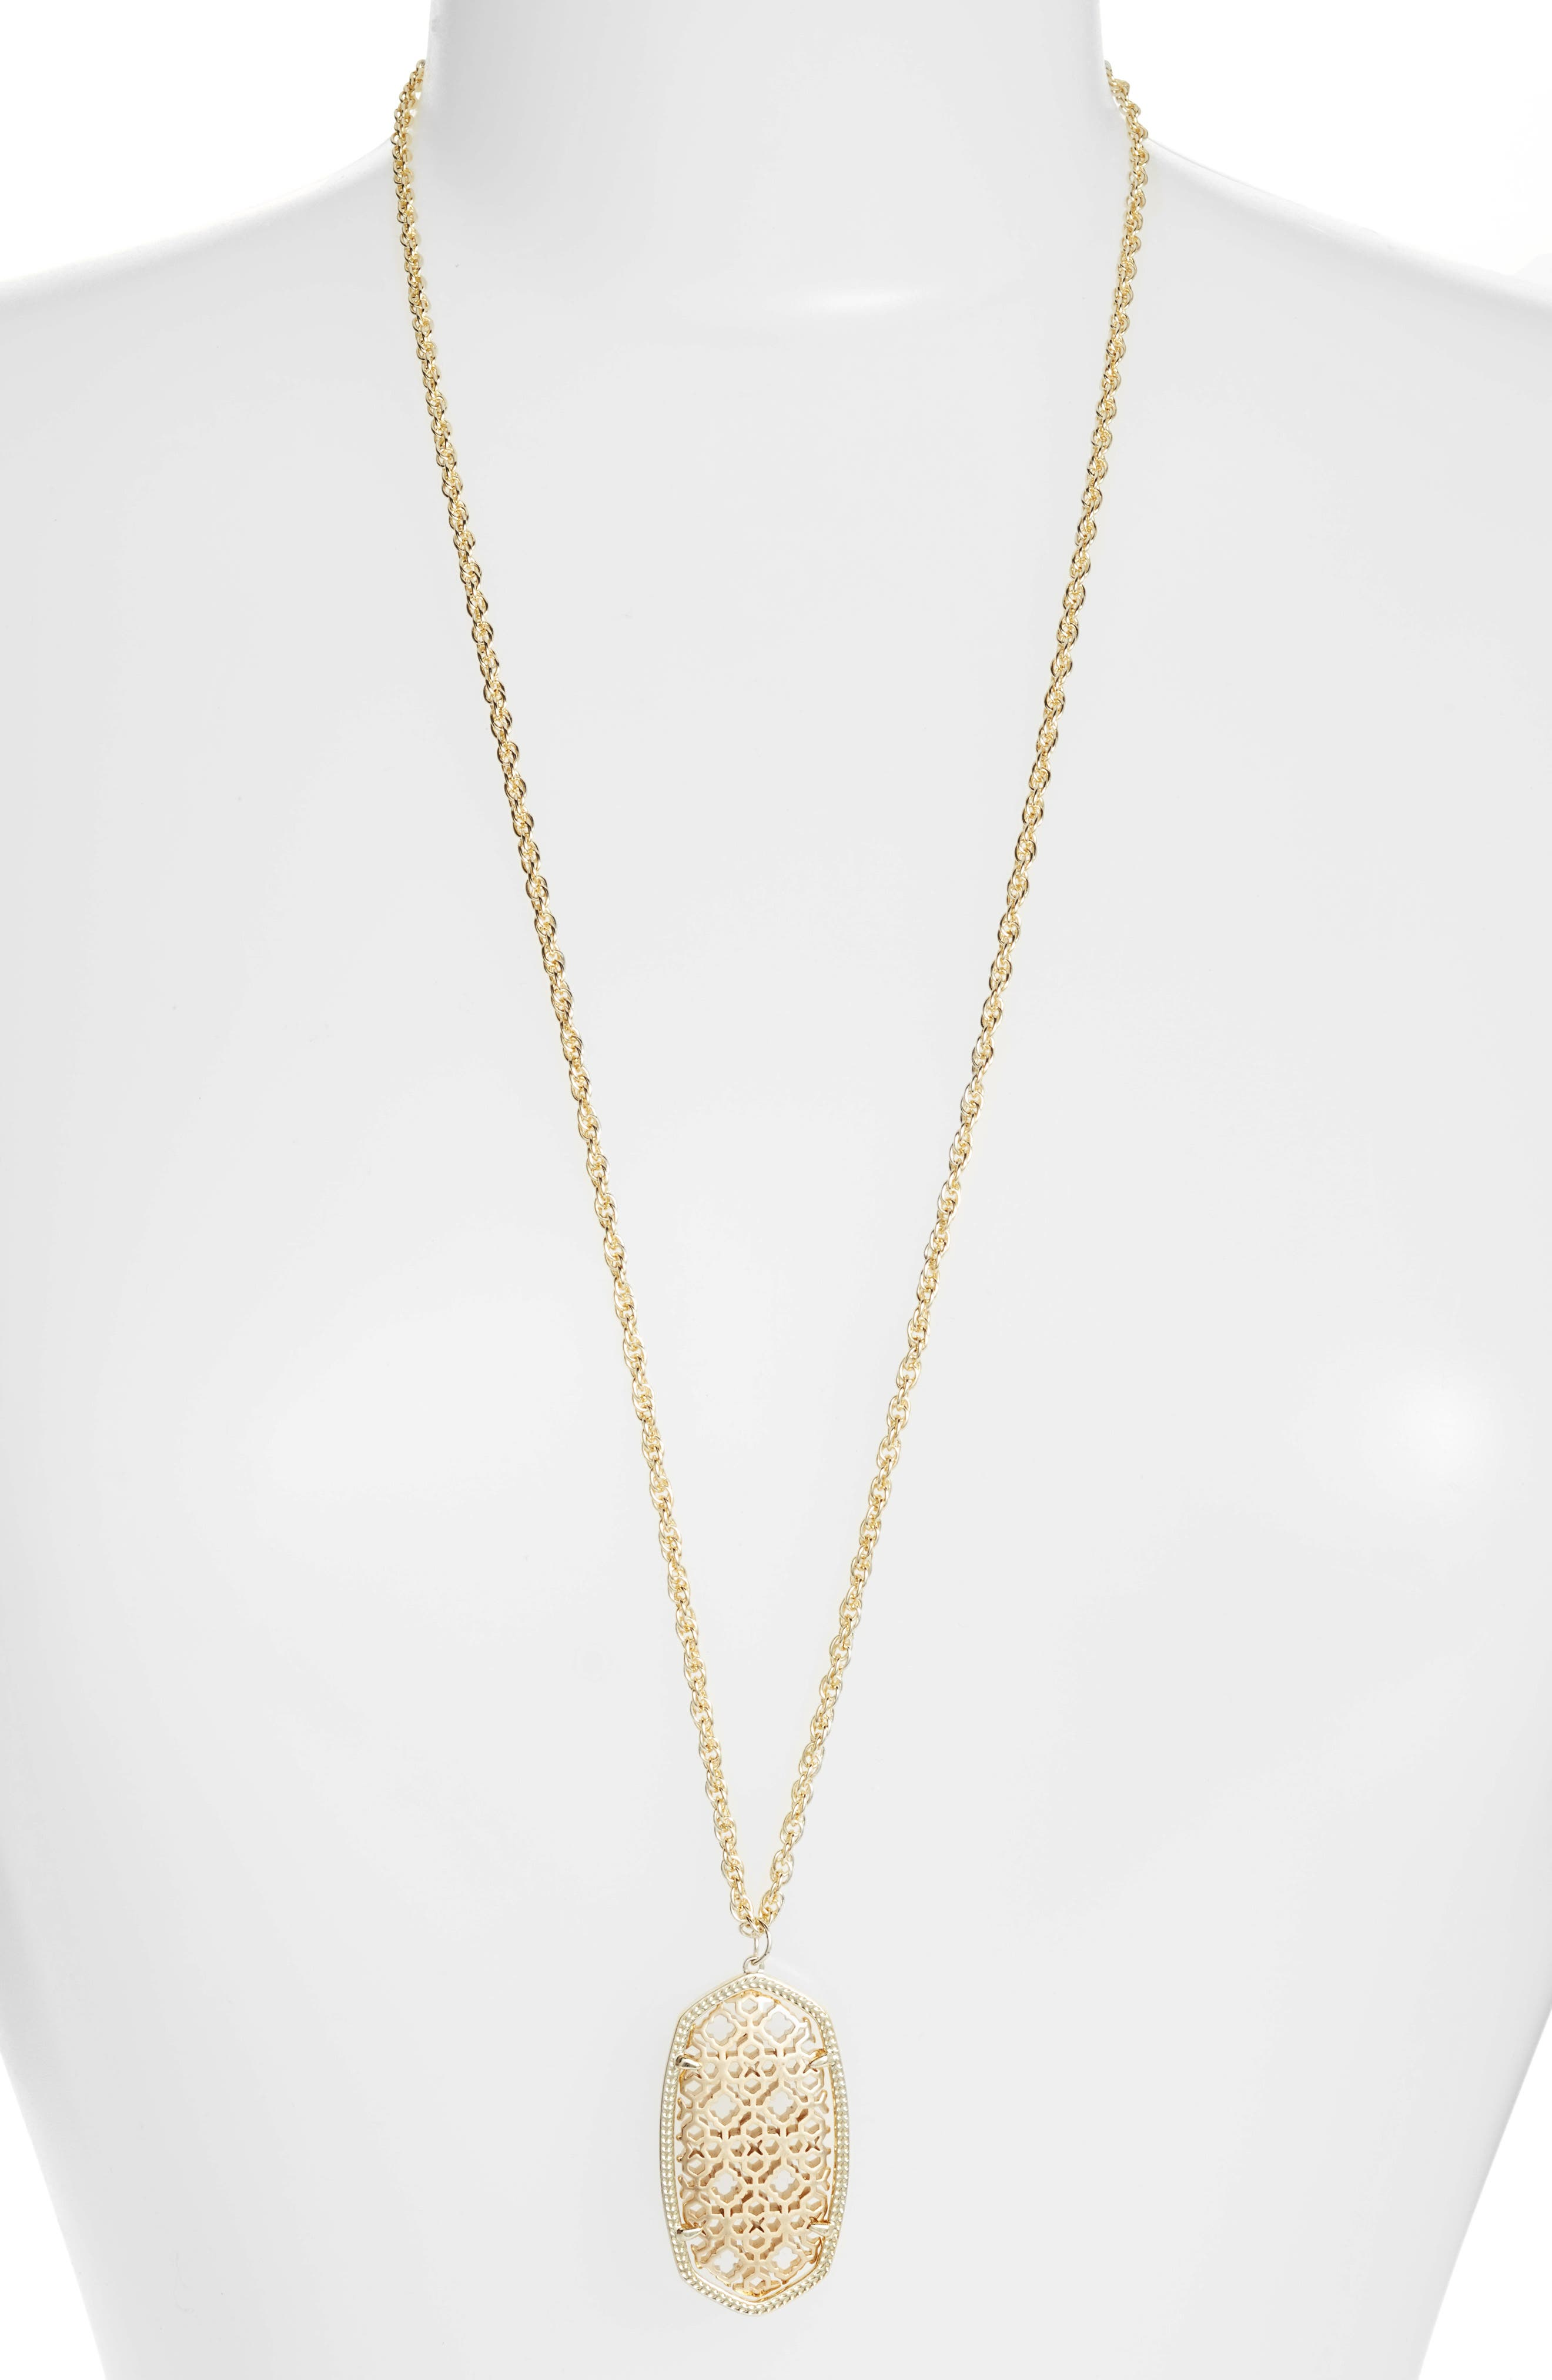 Kendra Scott Rae Long Filigree Pendant Necklace